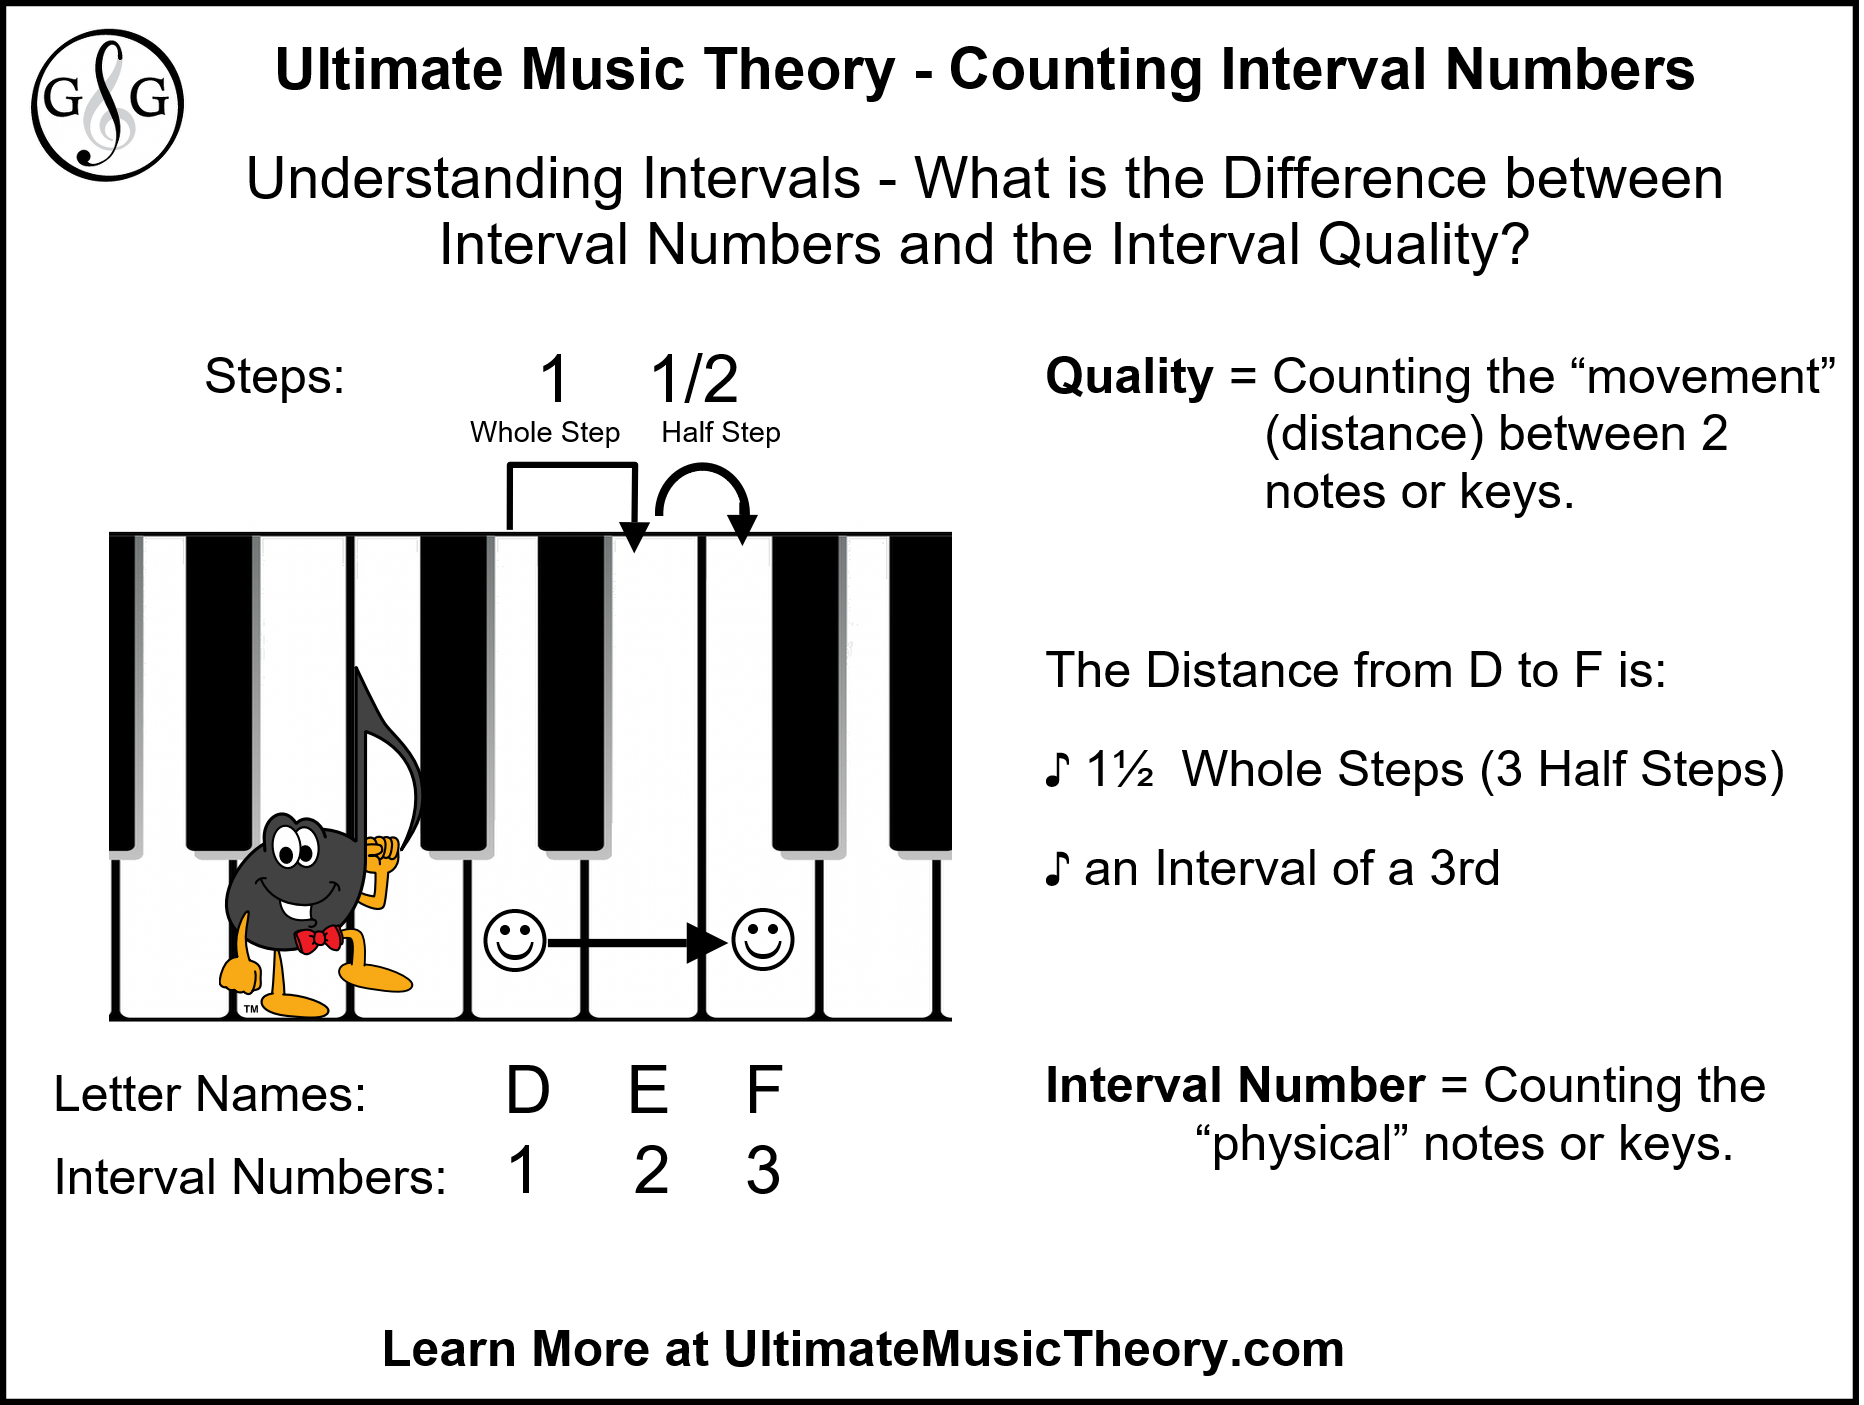 Ultimate Music Theory Difference between Numbers and Quality